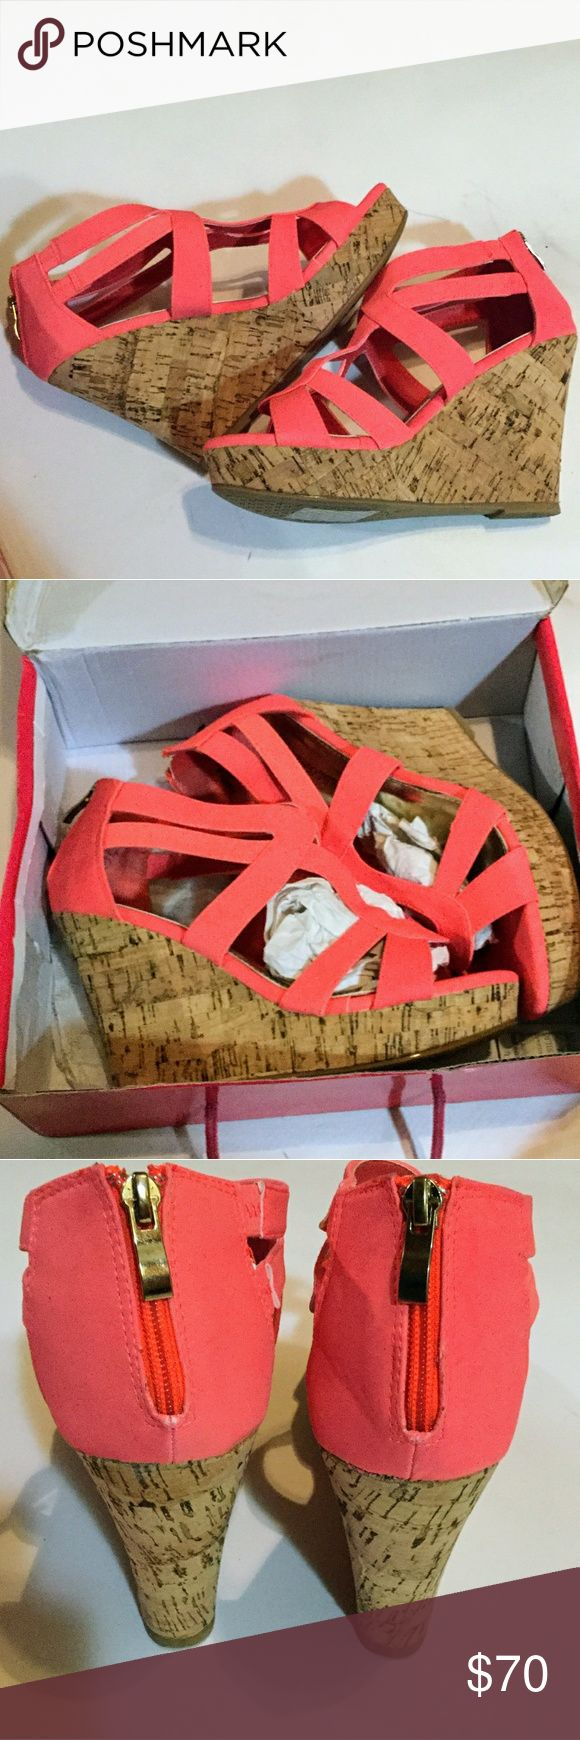 Coral Pink Wedges Size 9 New In Box New , never worn size 9 they are a cute cora…